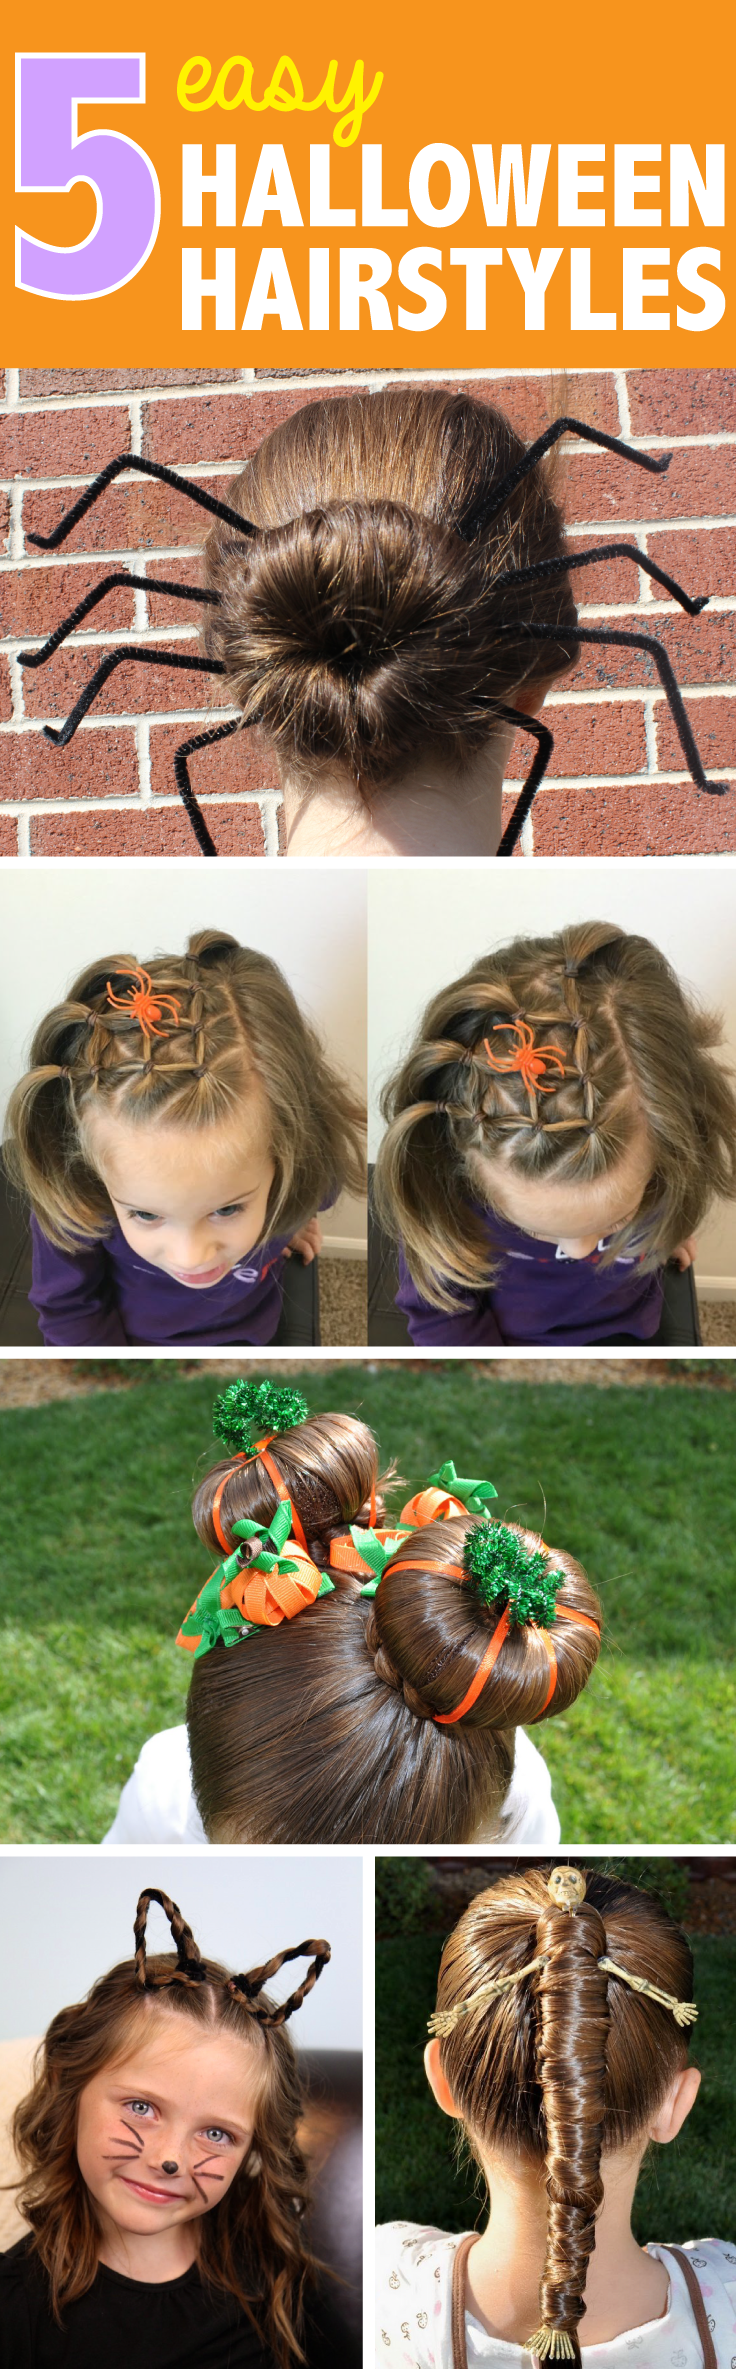 five easy halloween hairstyles for girls | trick or treating